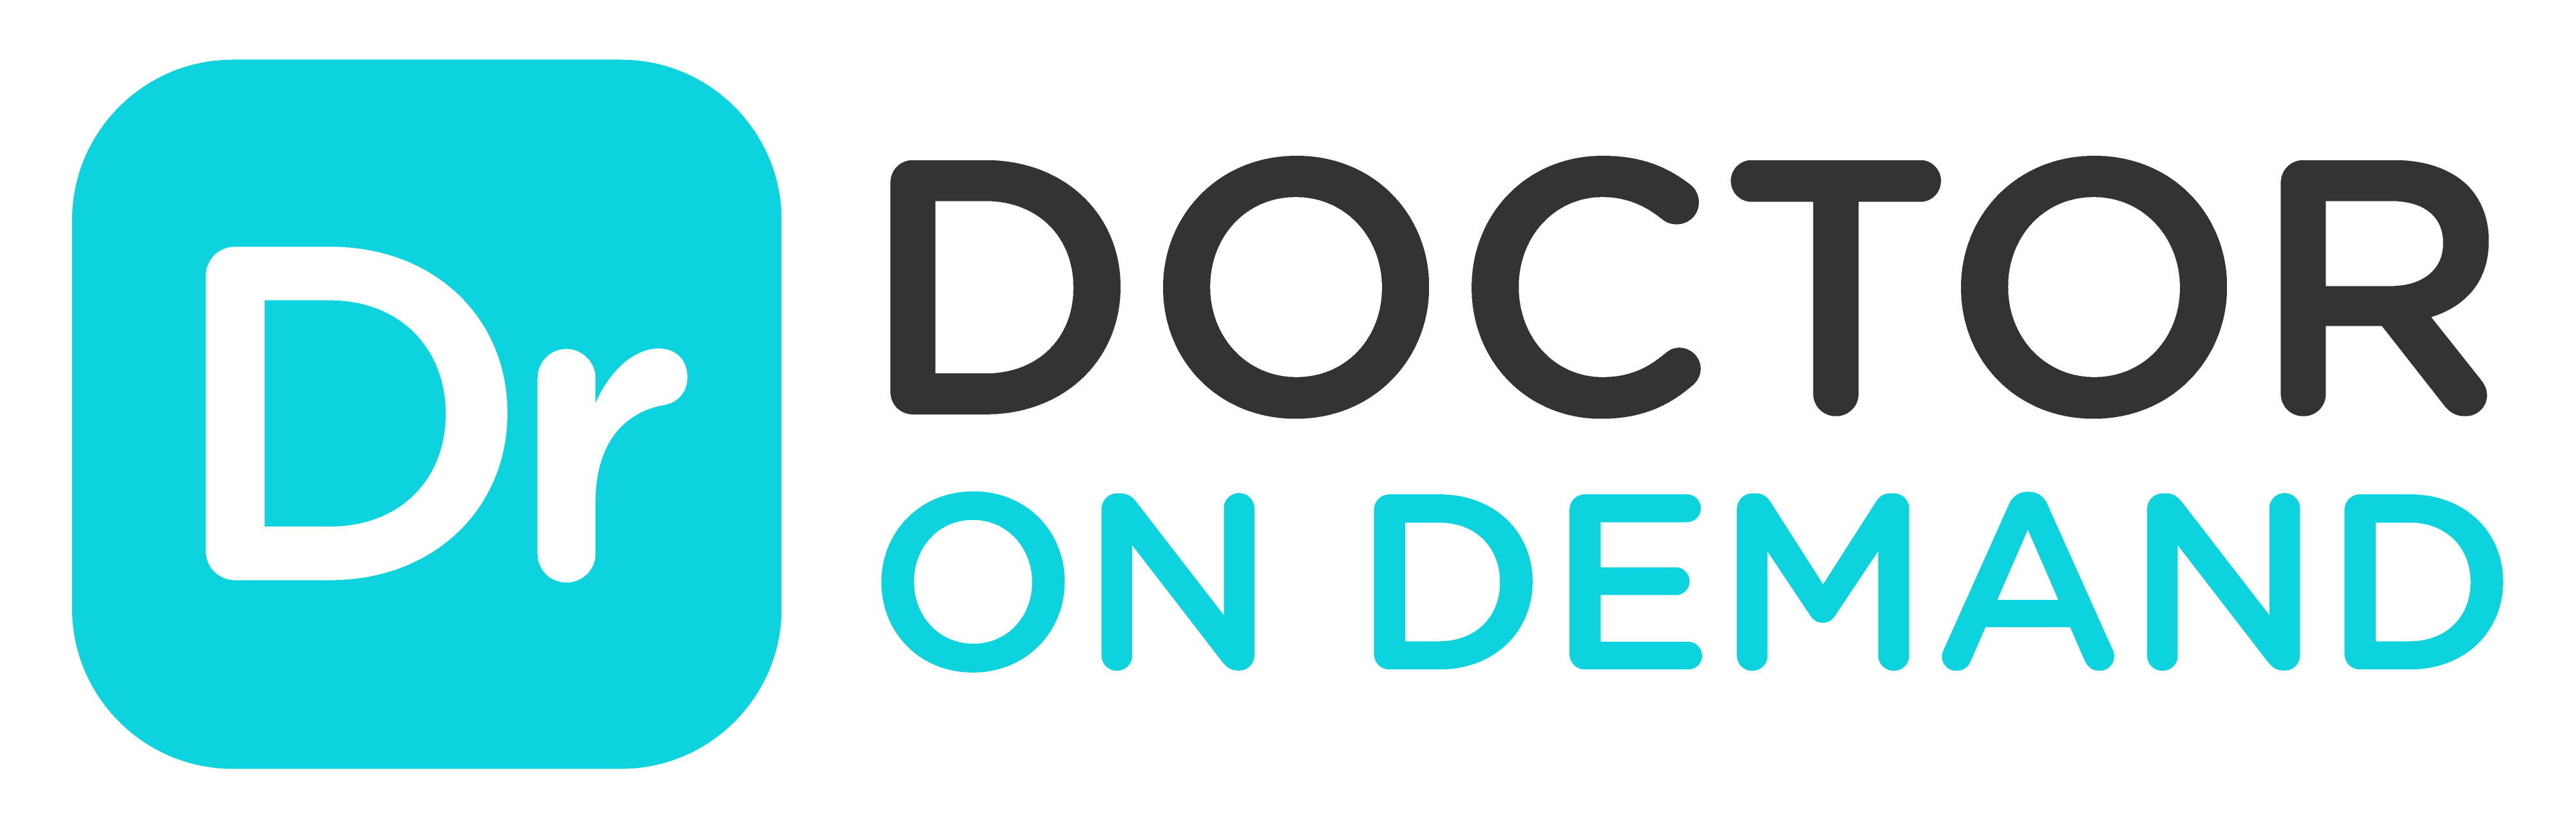 Doctor On Demand Review + Promo Code for FREE First Visit - The ...